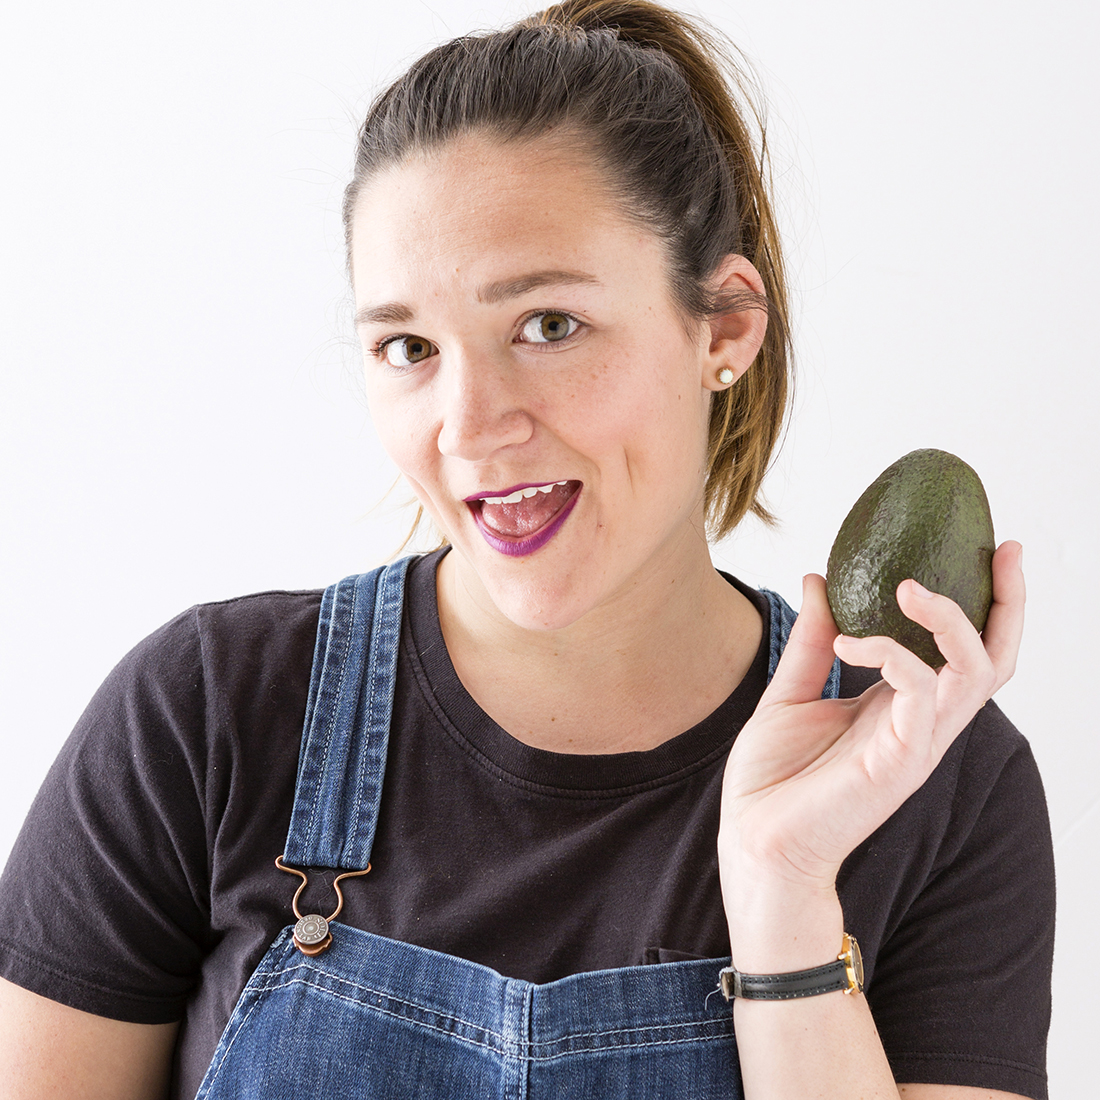 Cortney_Avocado_Hacks_003